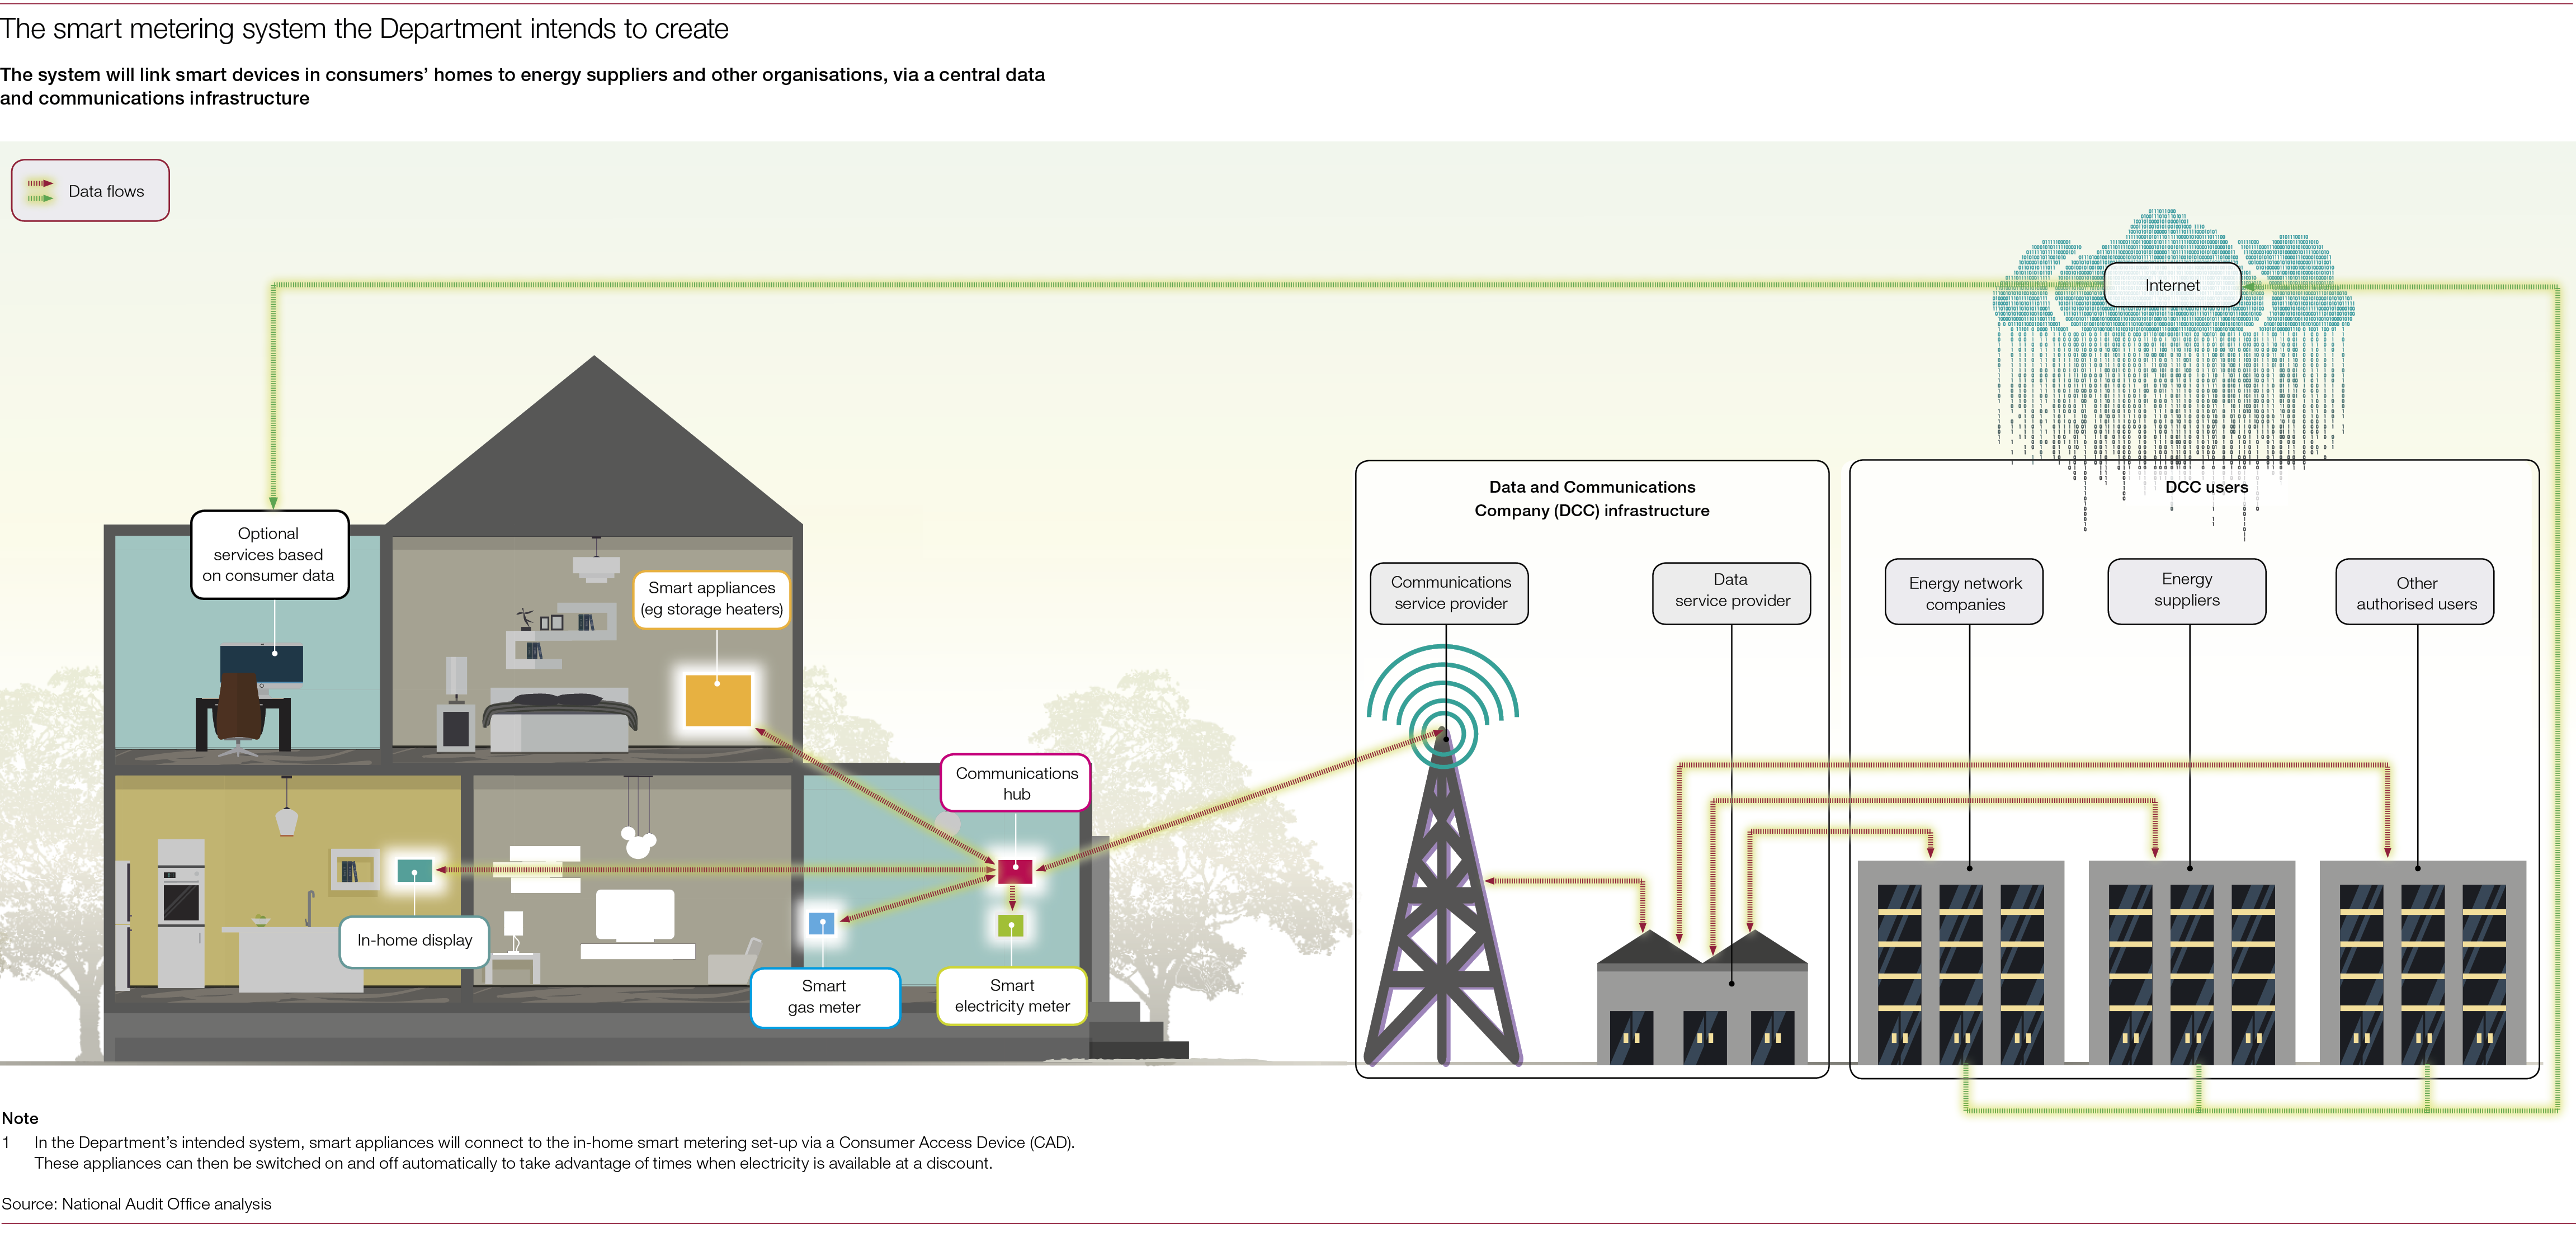 Rolling out smart meters - National Audit Office (NAO) Report